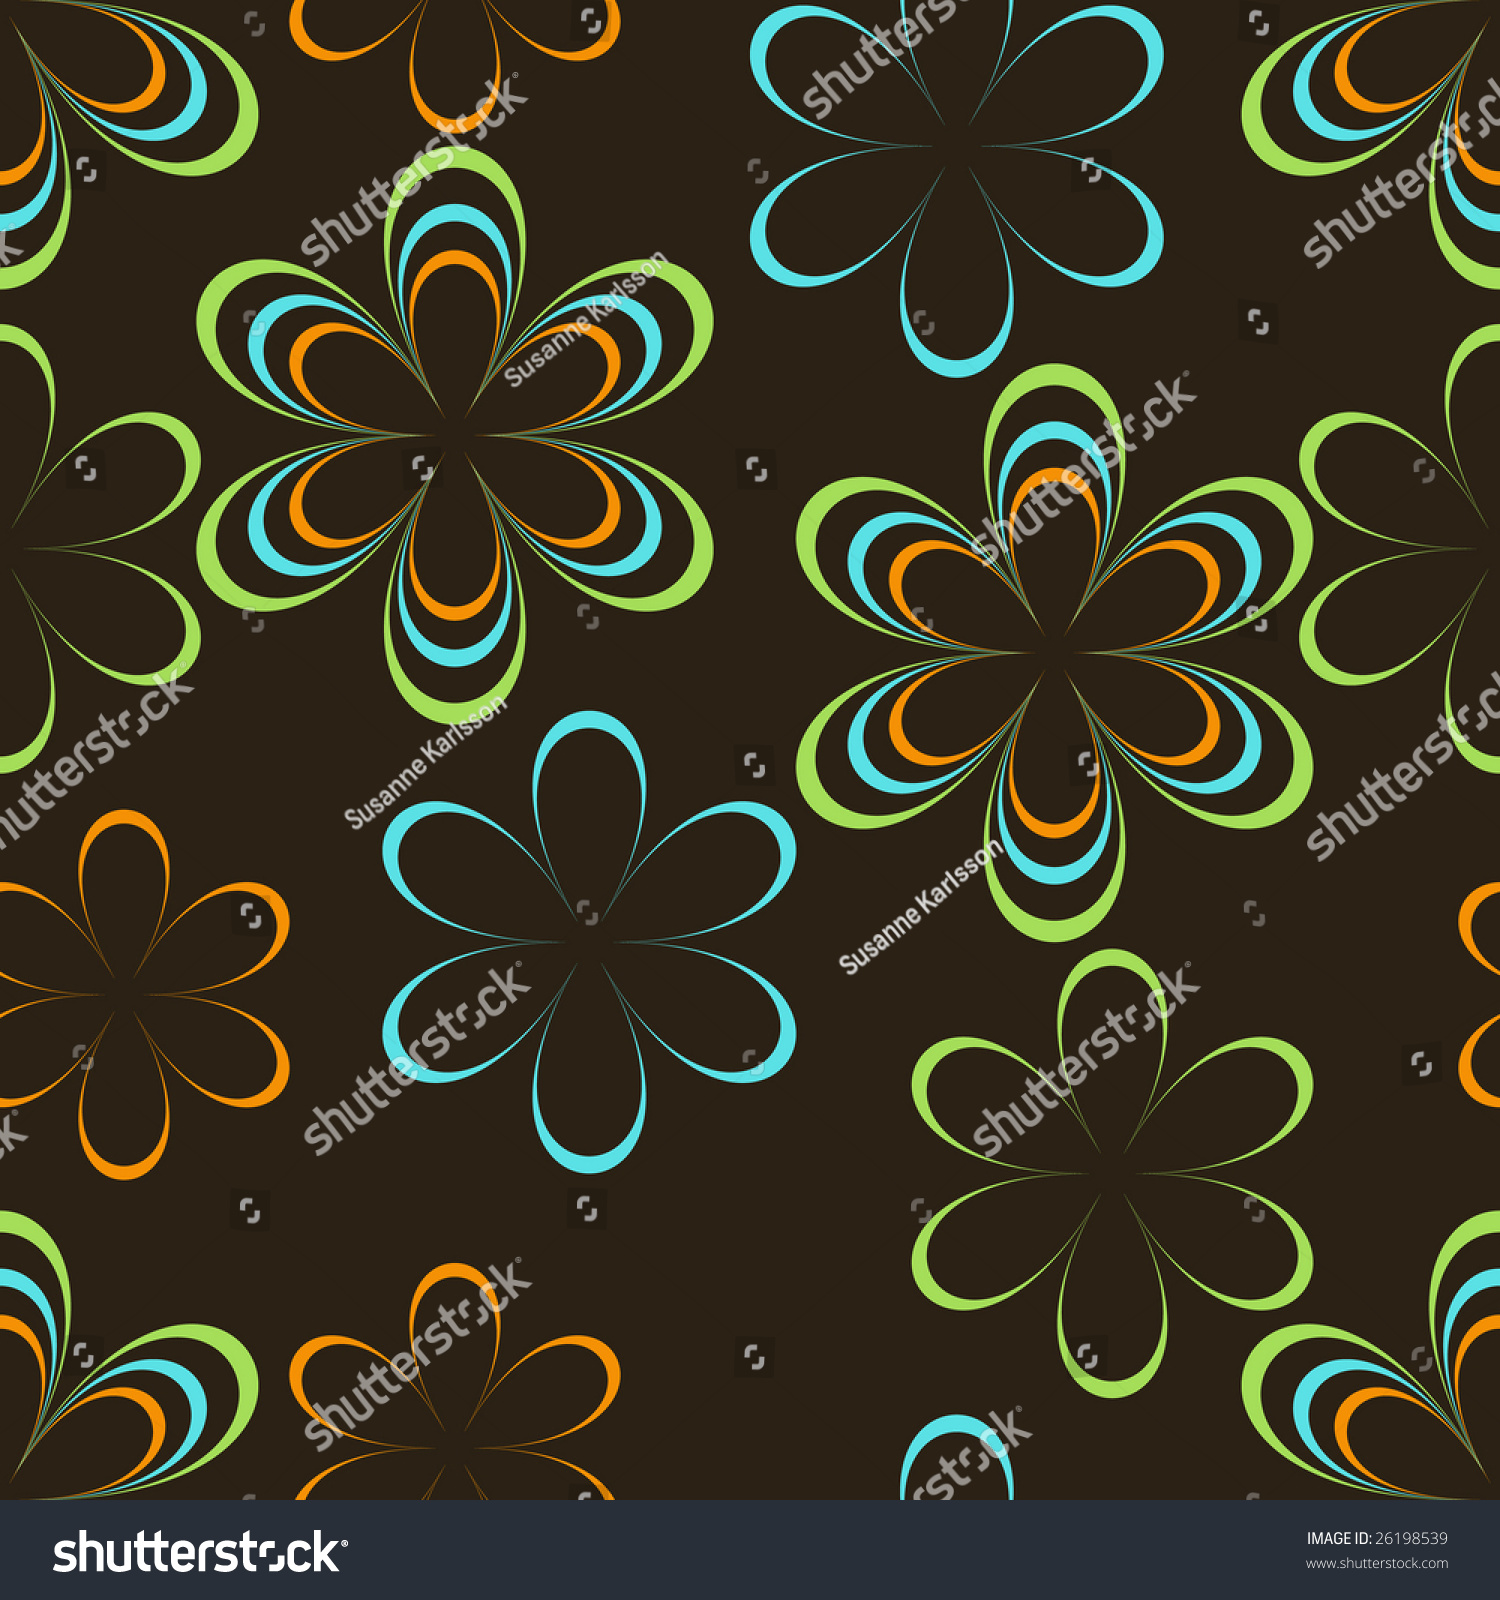 Line Art Flower Background : Colorful line art flowers seamless background pattern